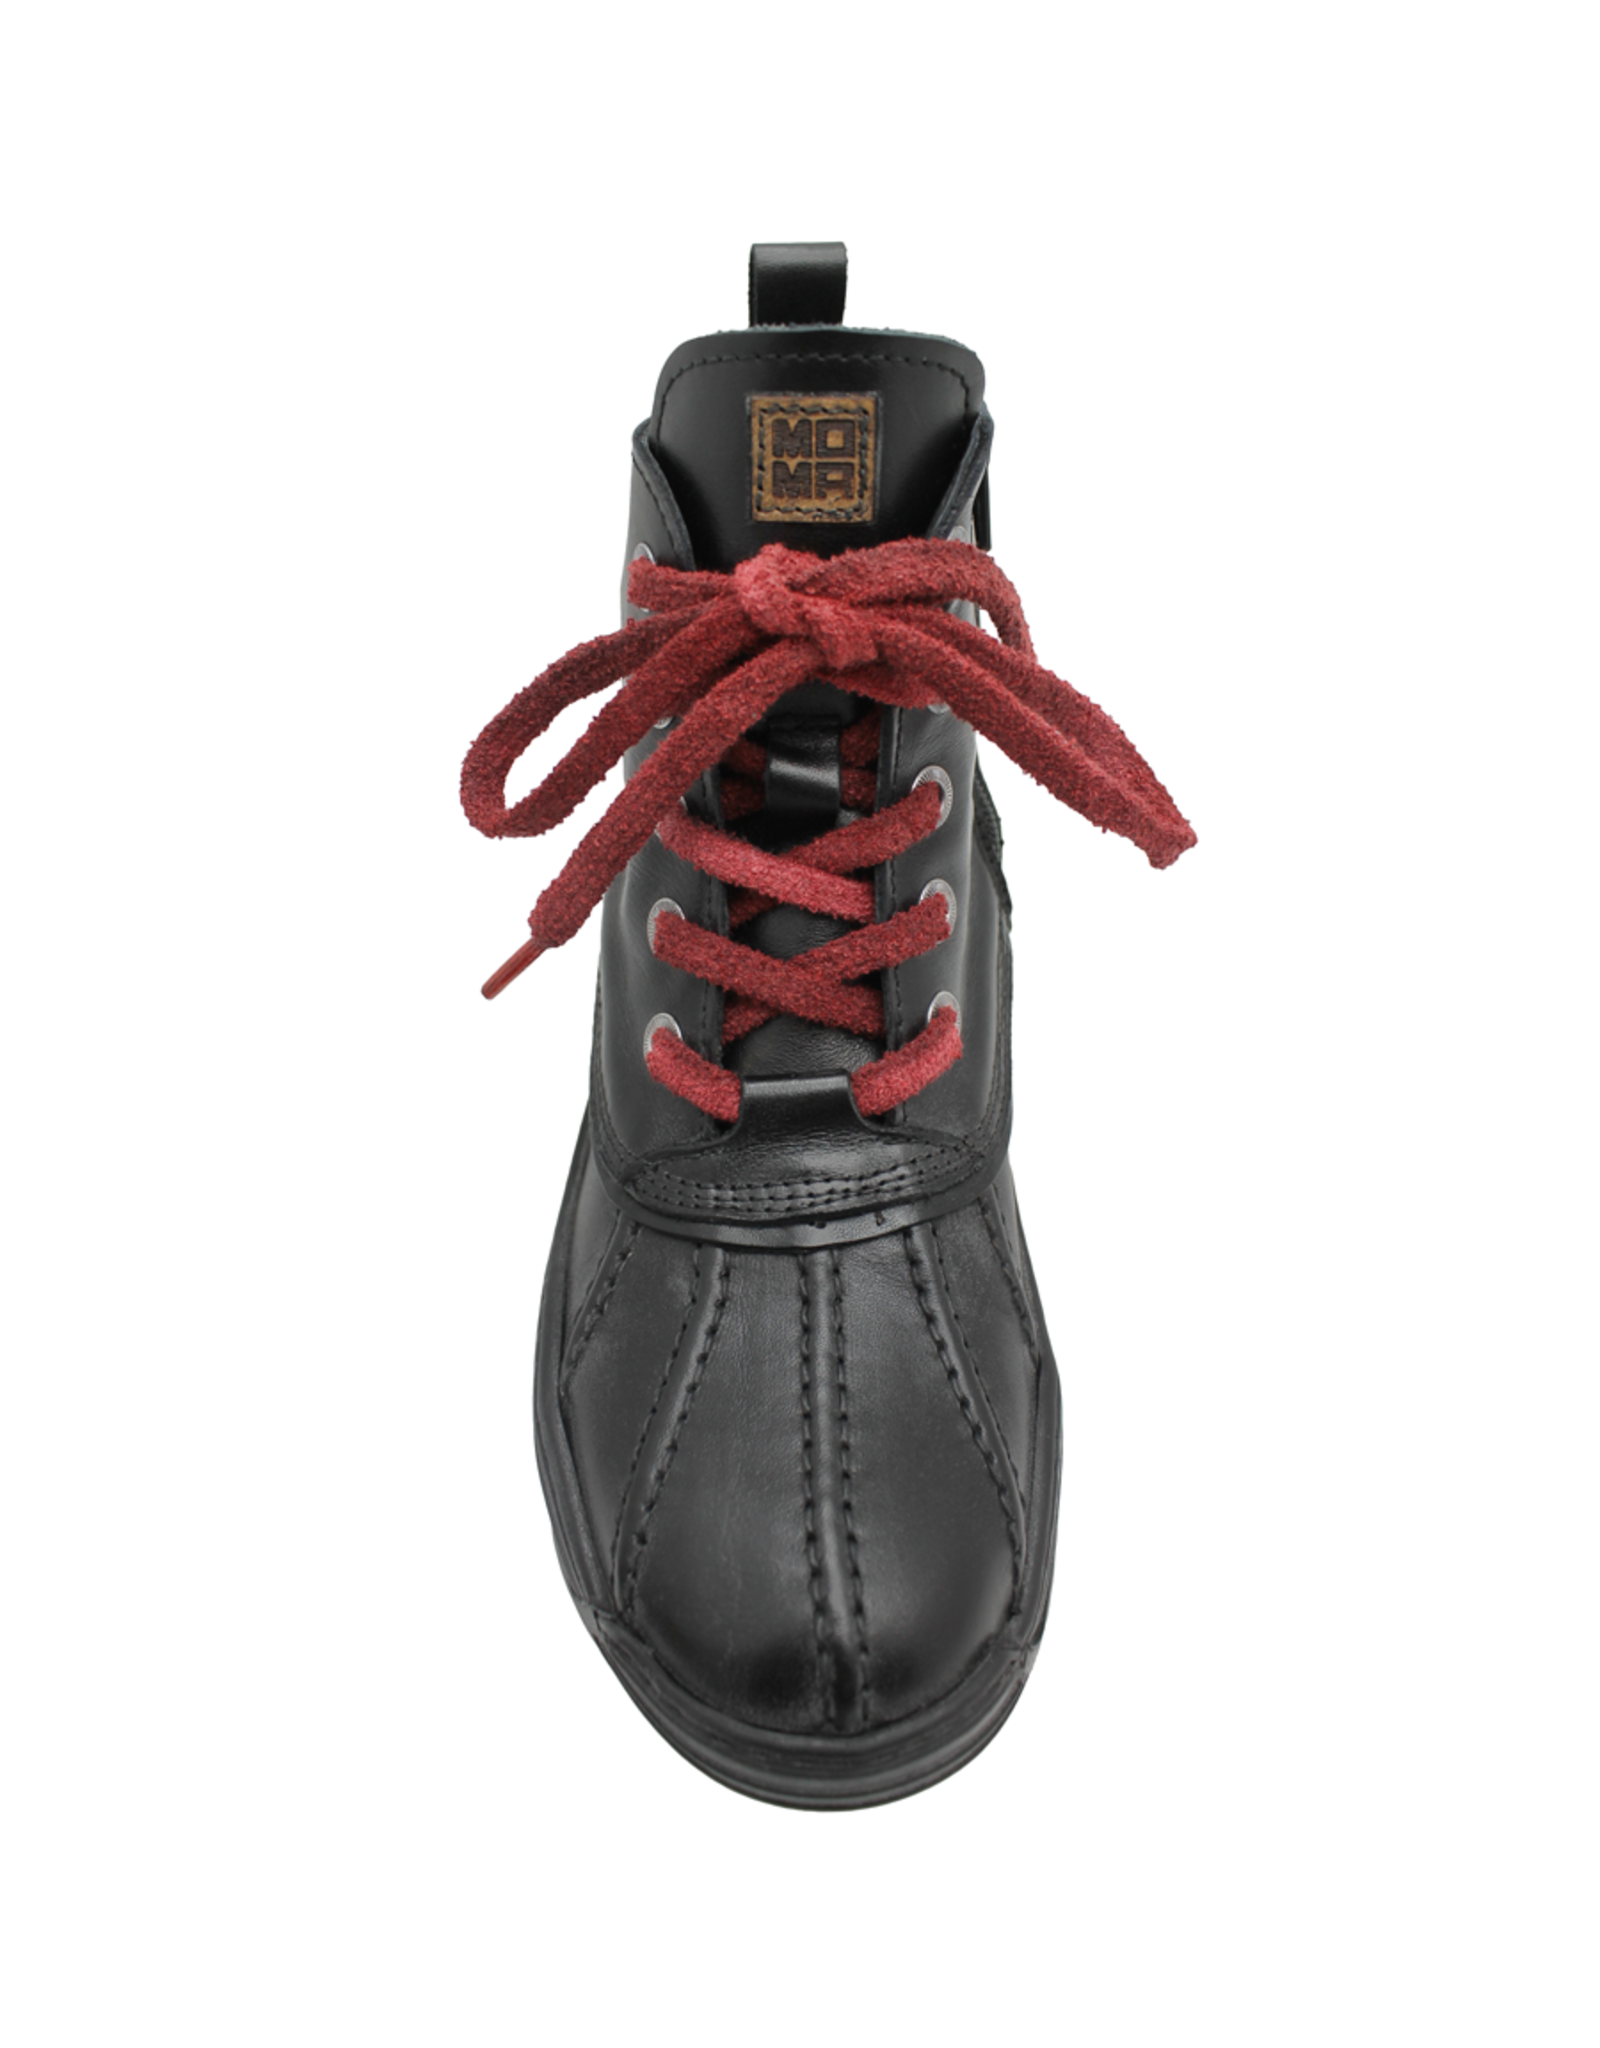 Moma Moma Black Red Lace-Up Sneaker 9089